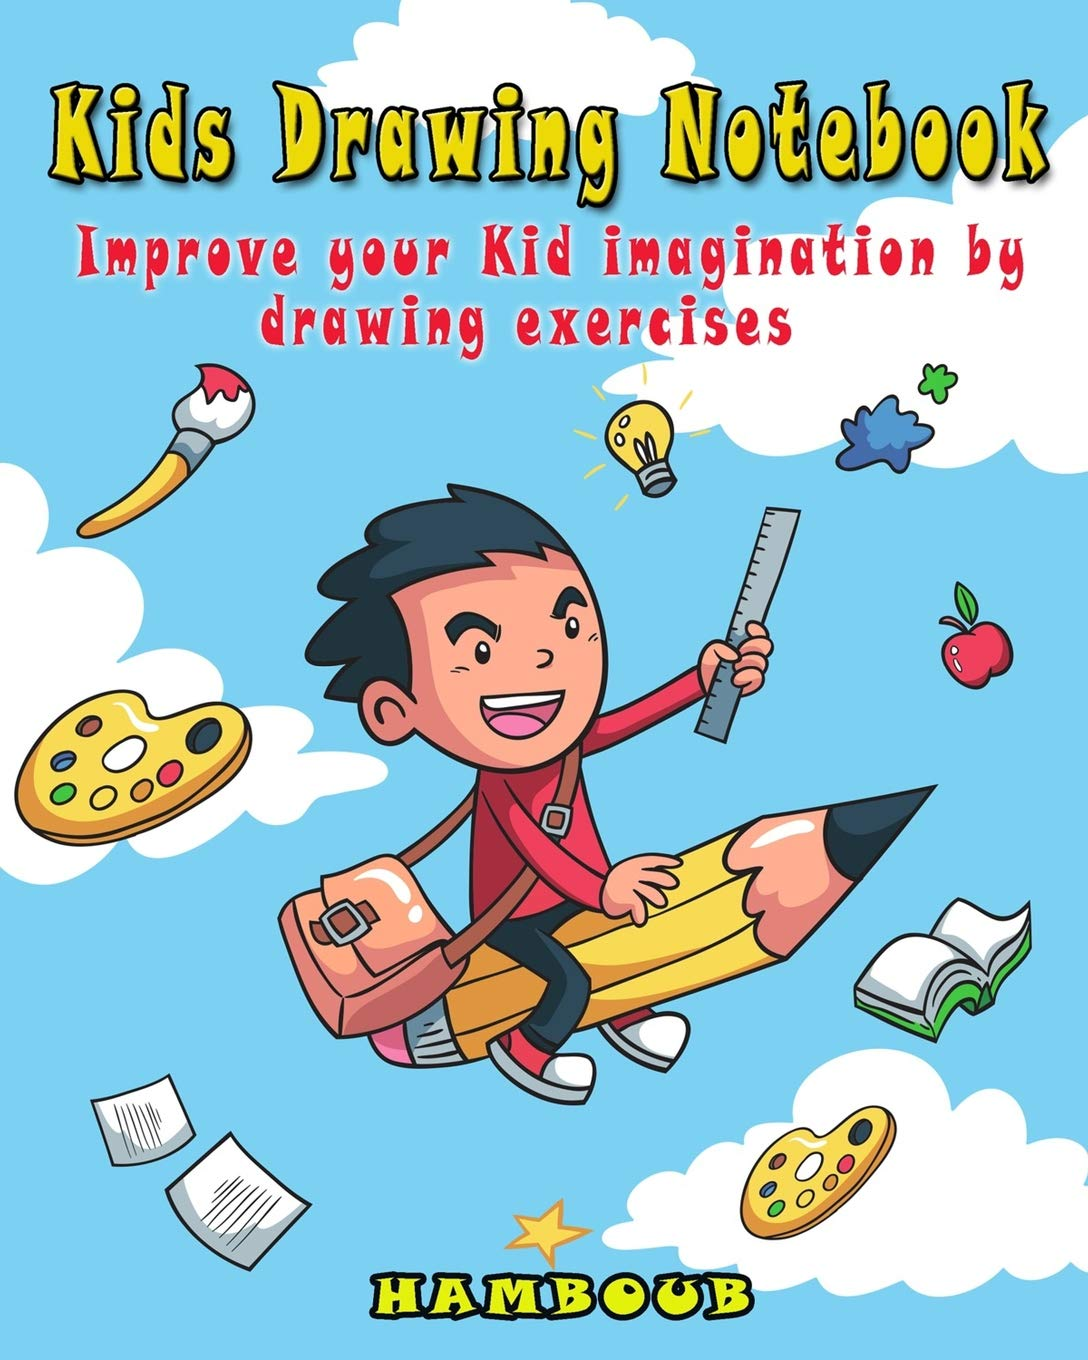 Kids Drawing Notebook: Improve your Kid Imagination by